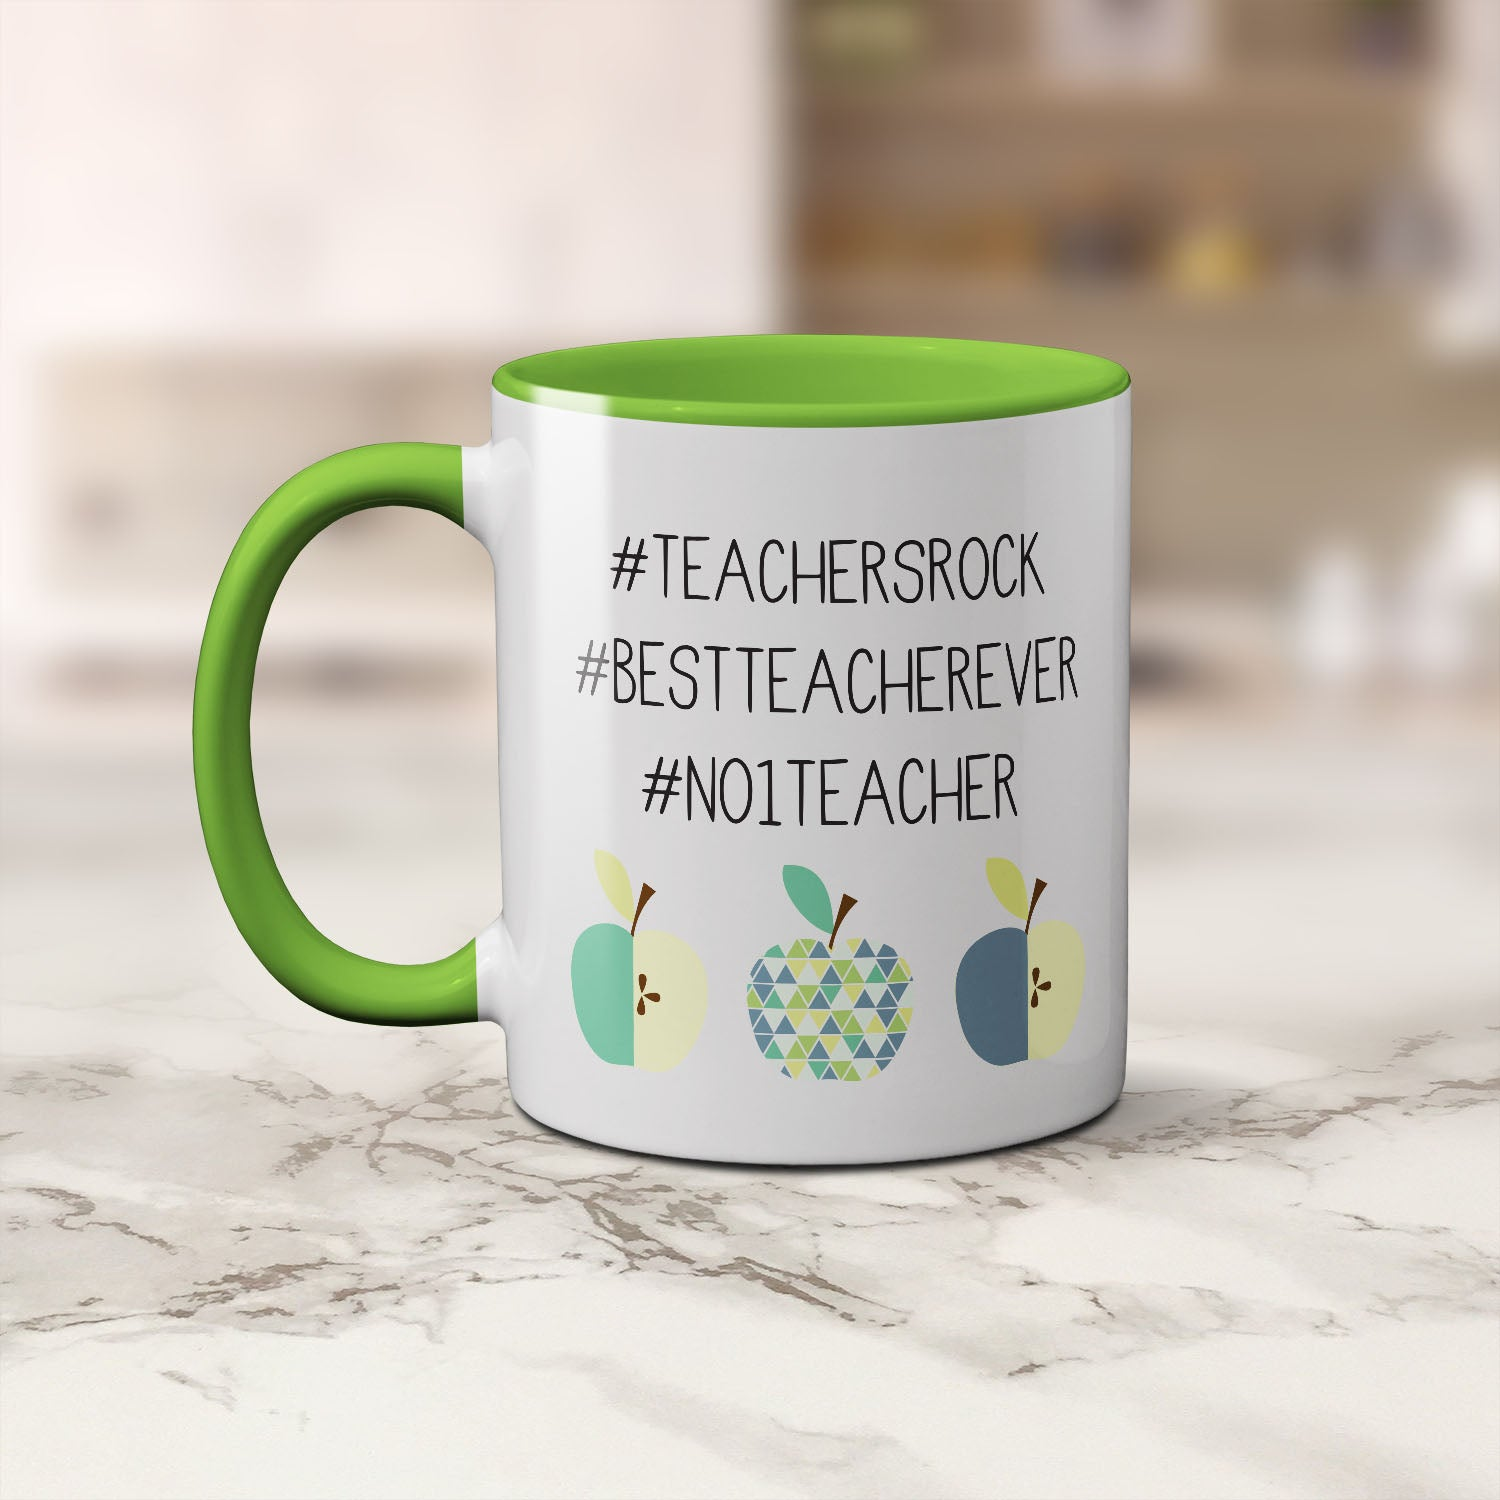 Mug - Teacher Hashtags Green Coffee Mug by mumandmehandmadedesigns- An Australian Online Stationery and Card Shop